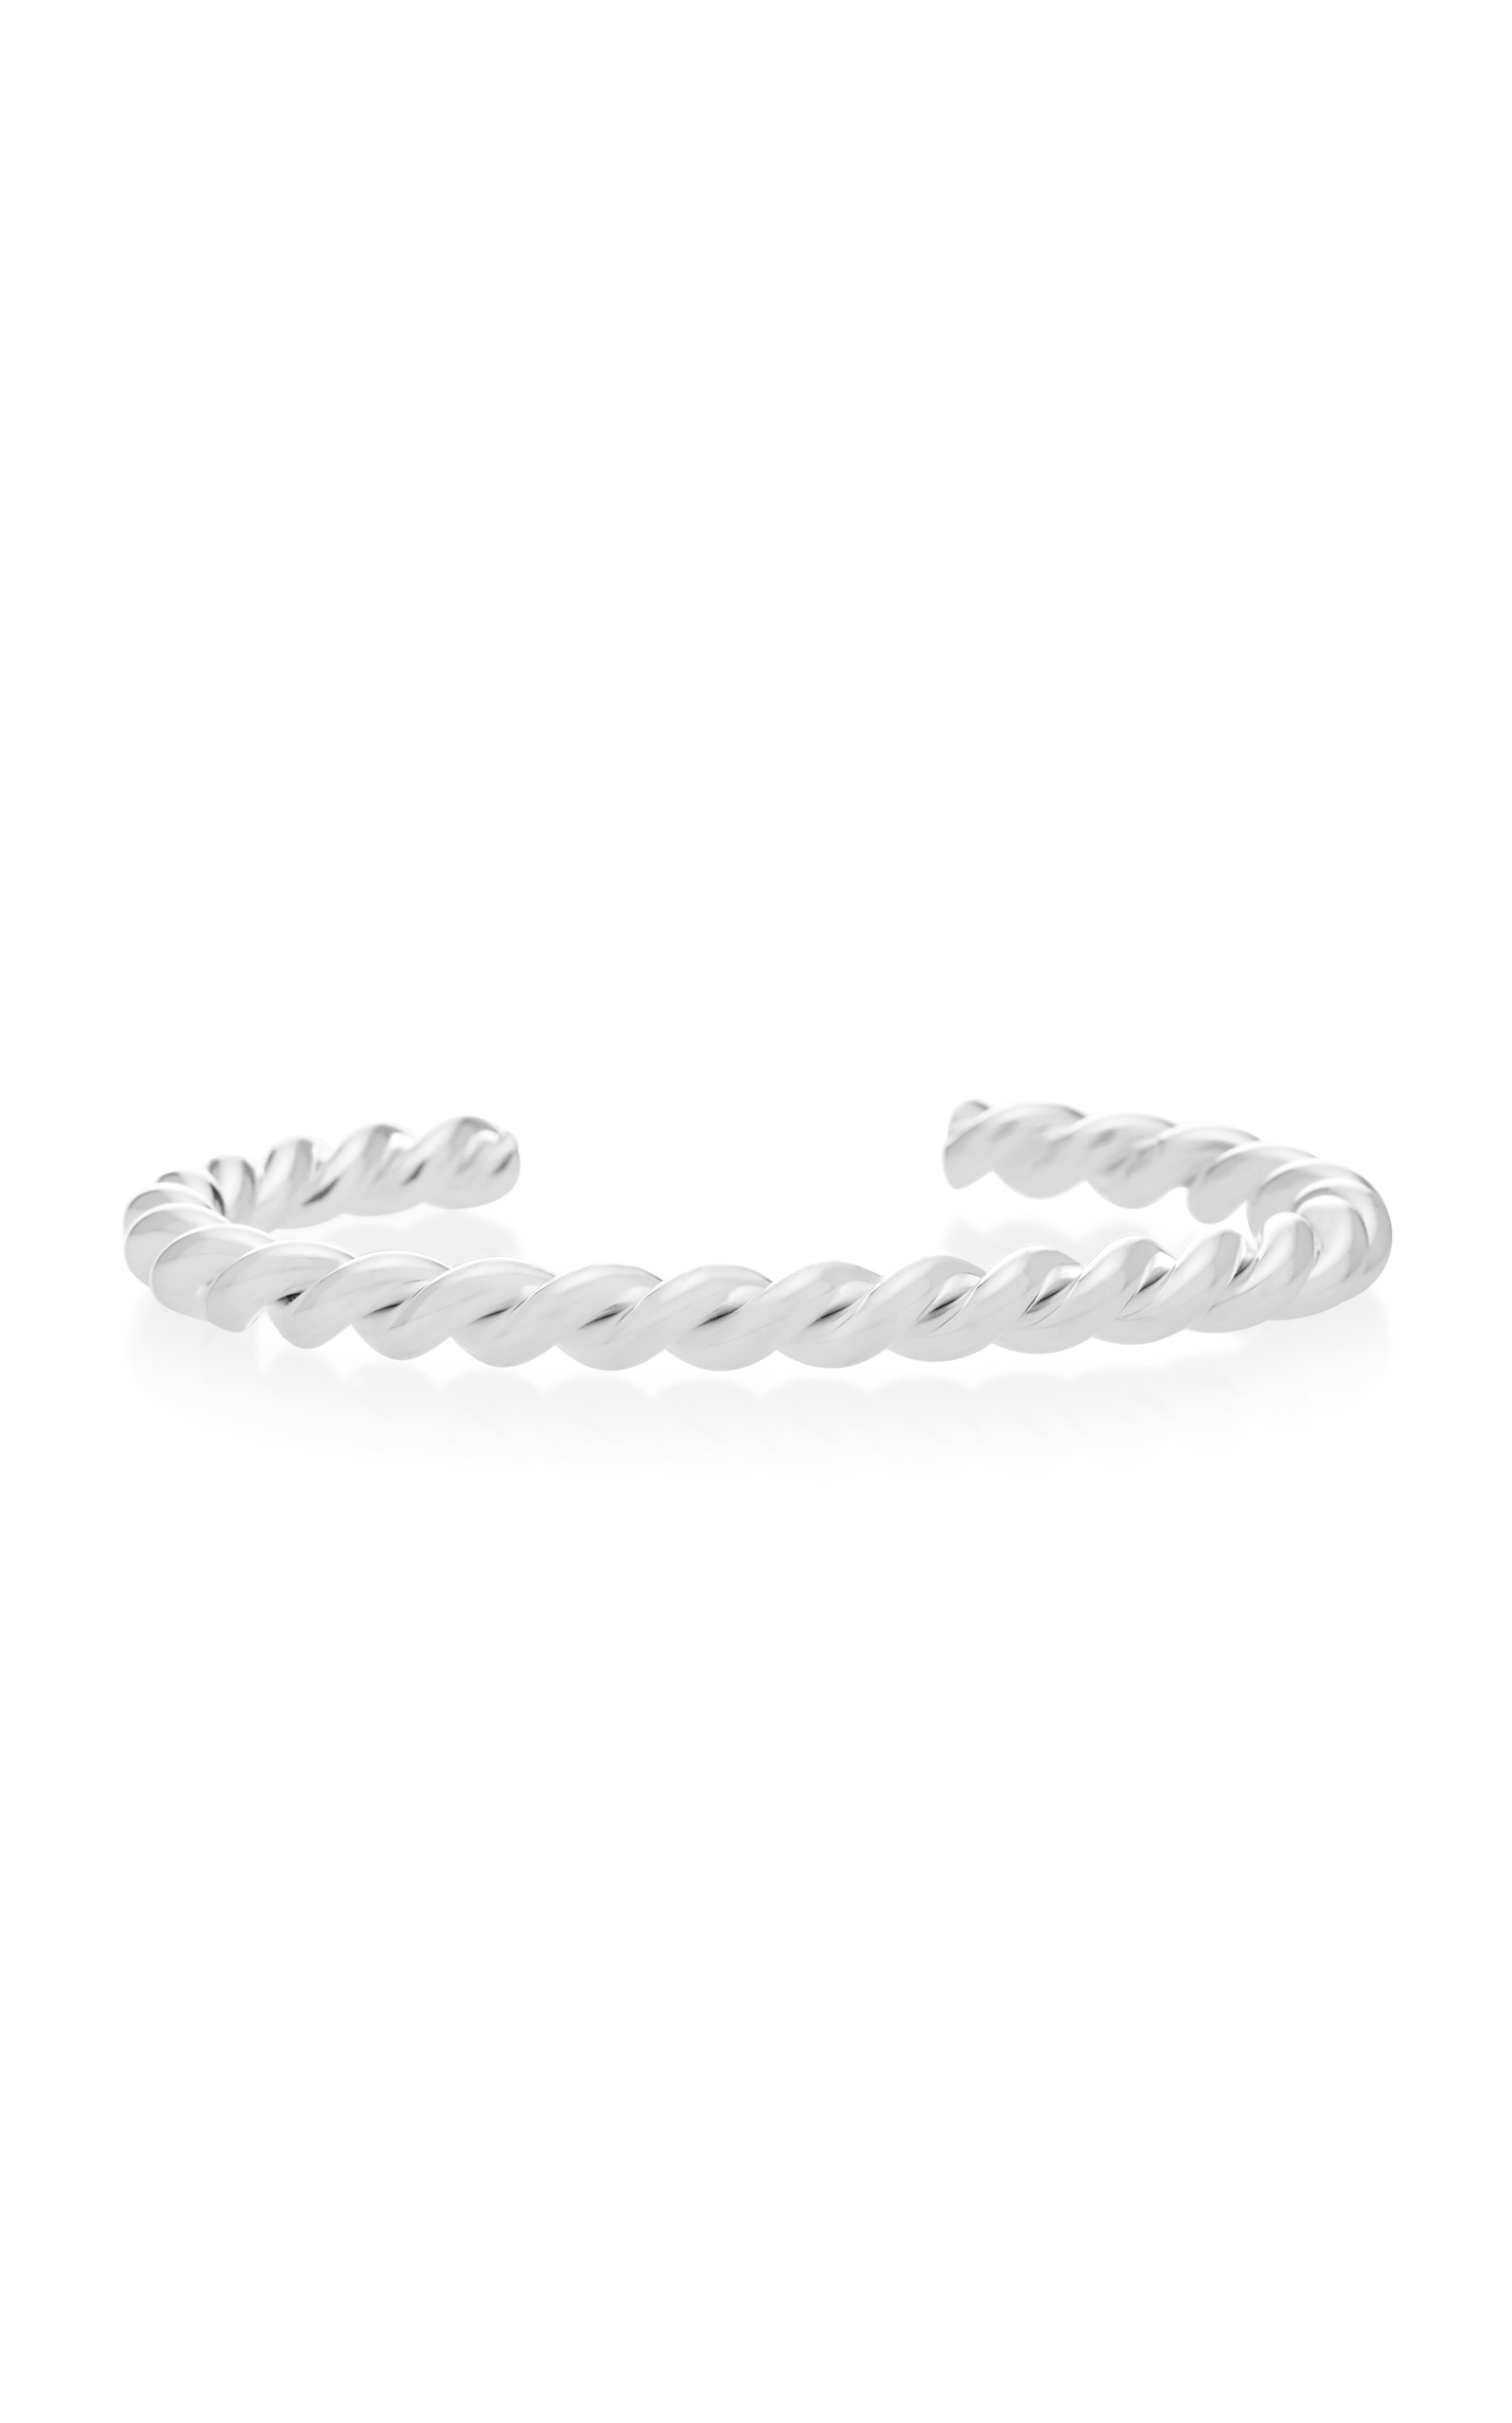 ISABEL LENNSE STERLING SILVER TWISTED CUFF BRACELET